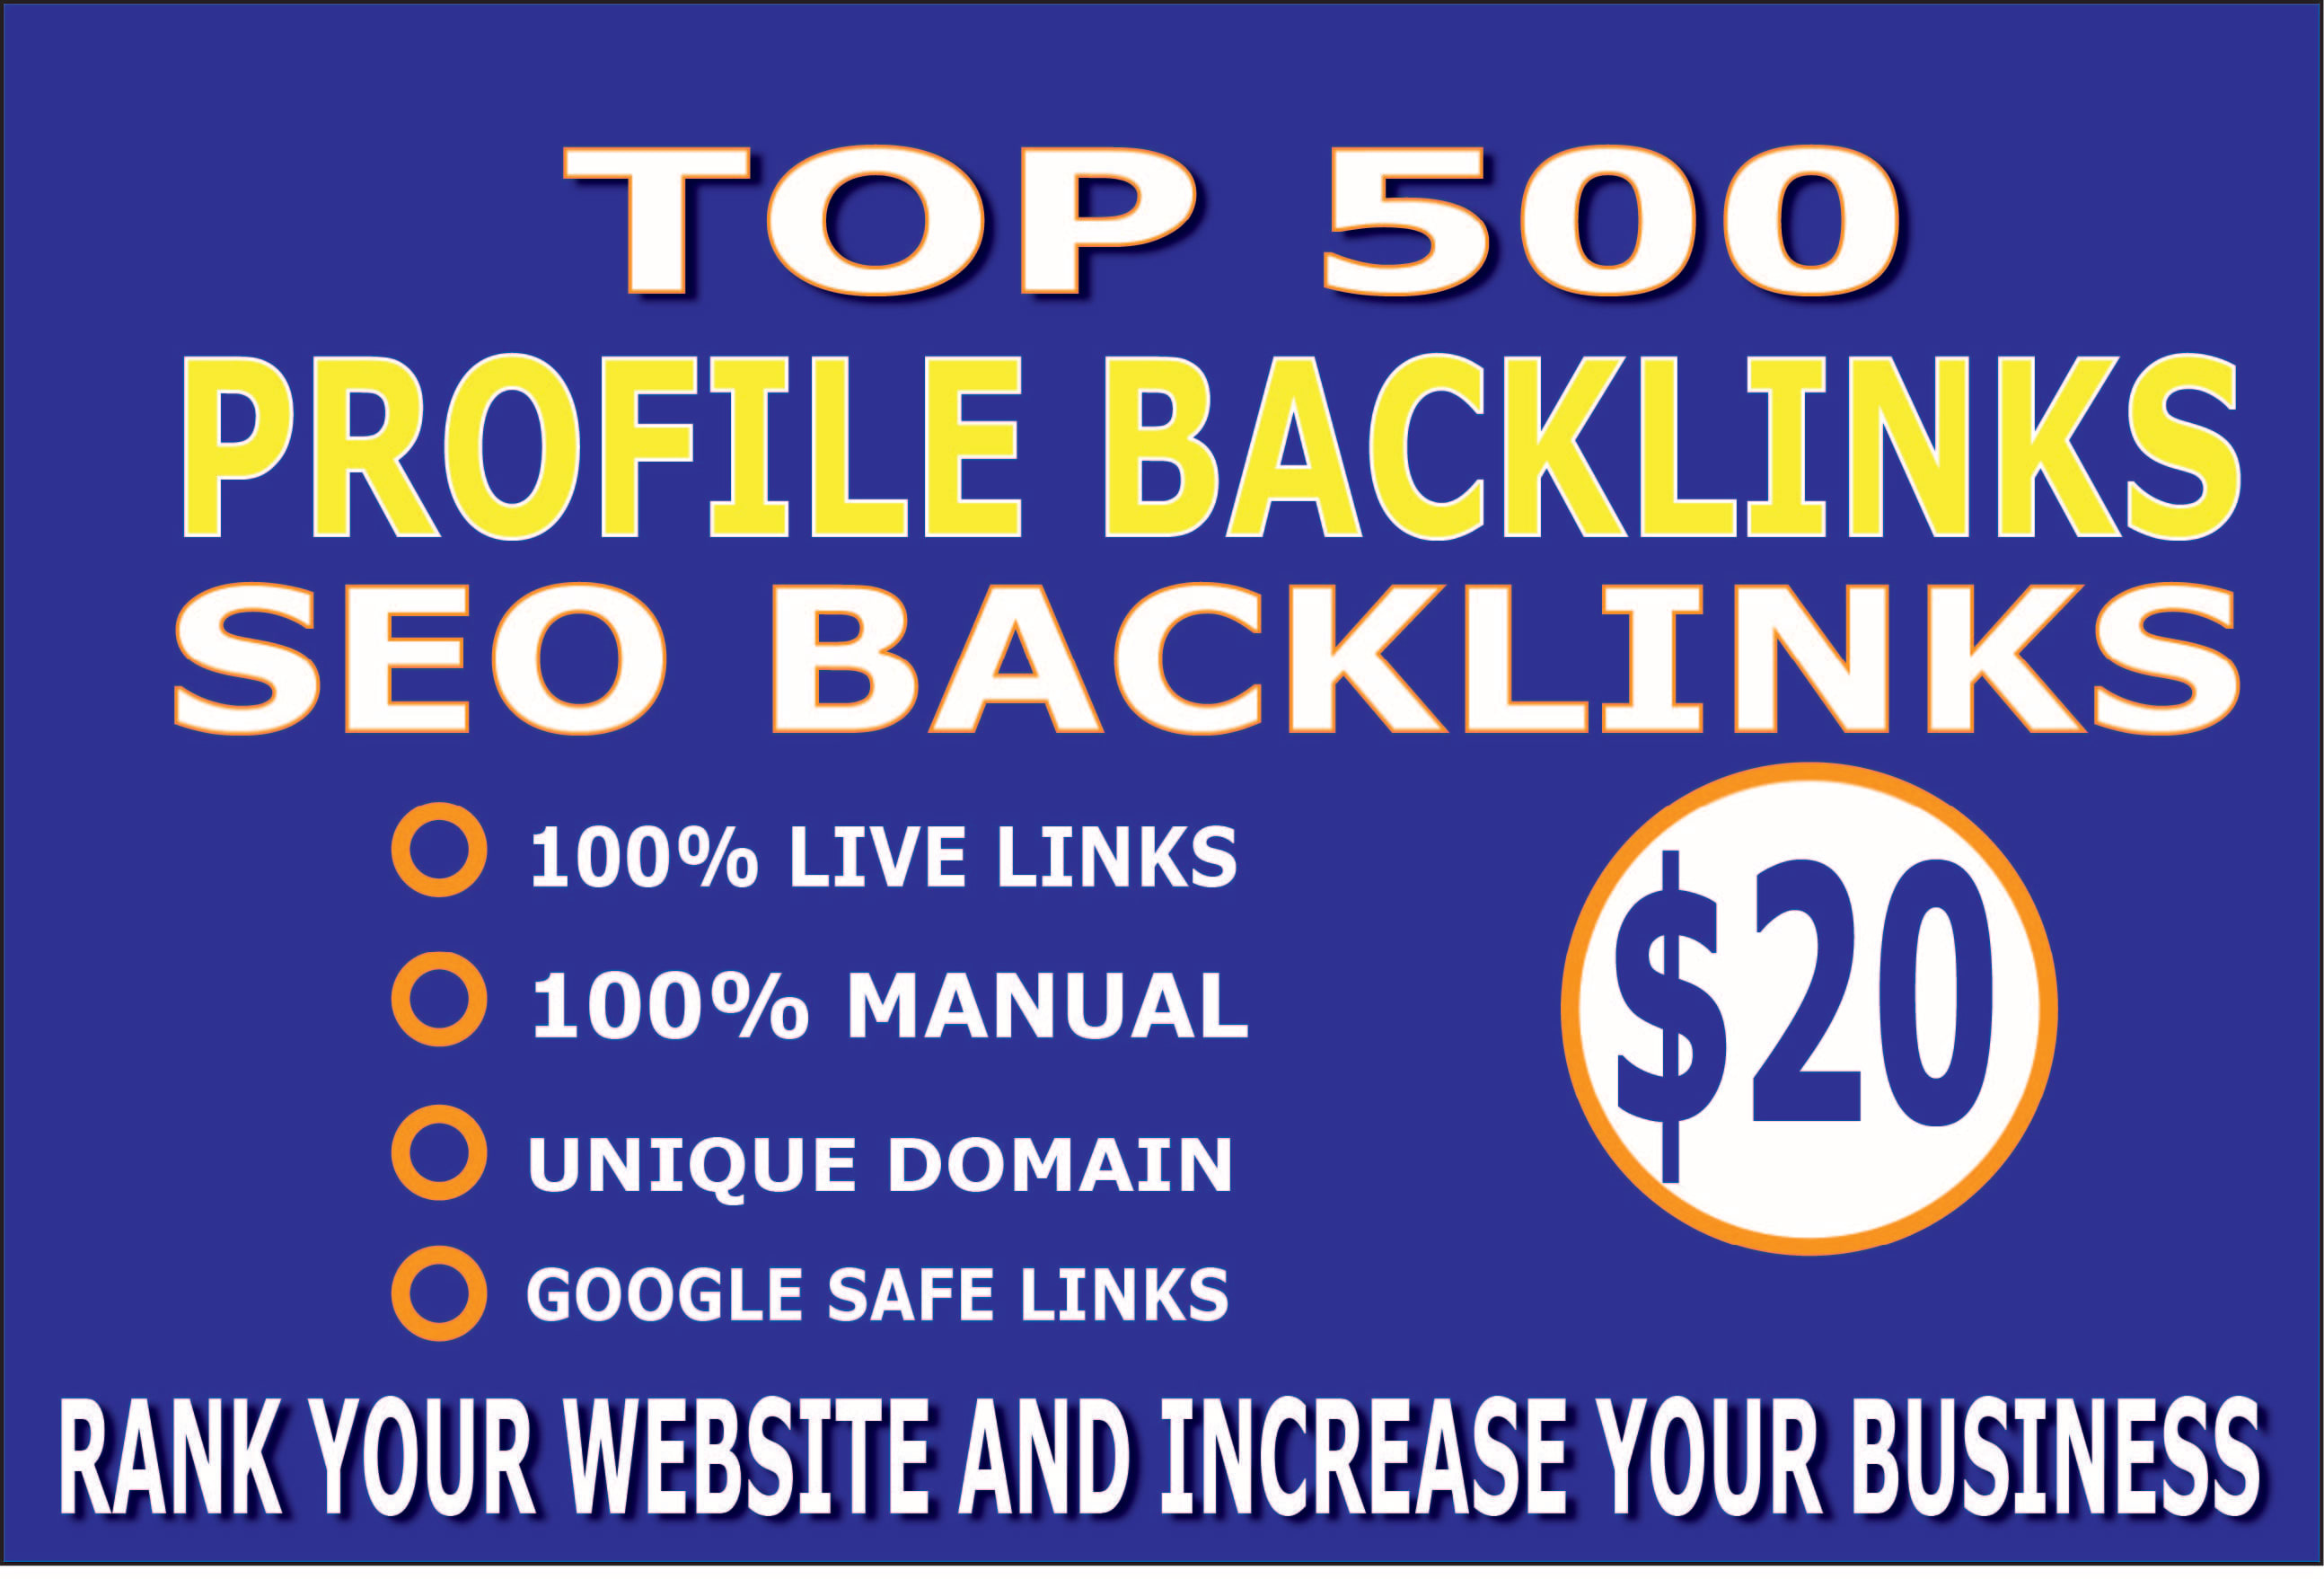 I will create 500 profile SEO backlinks for website ranking